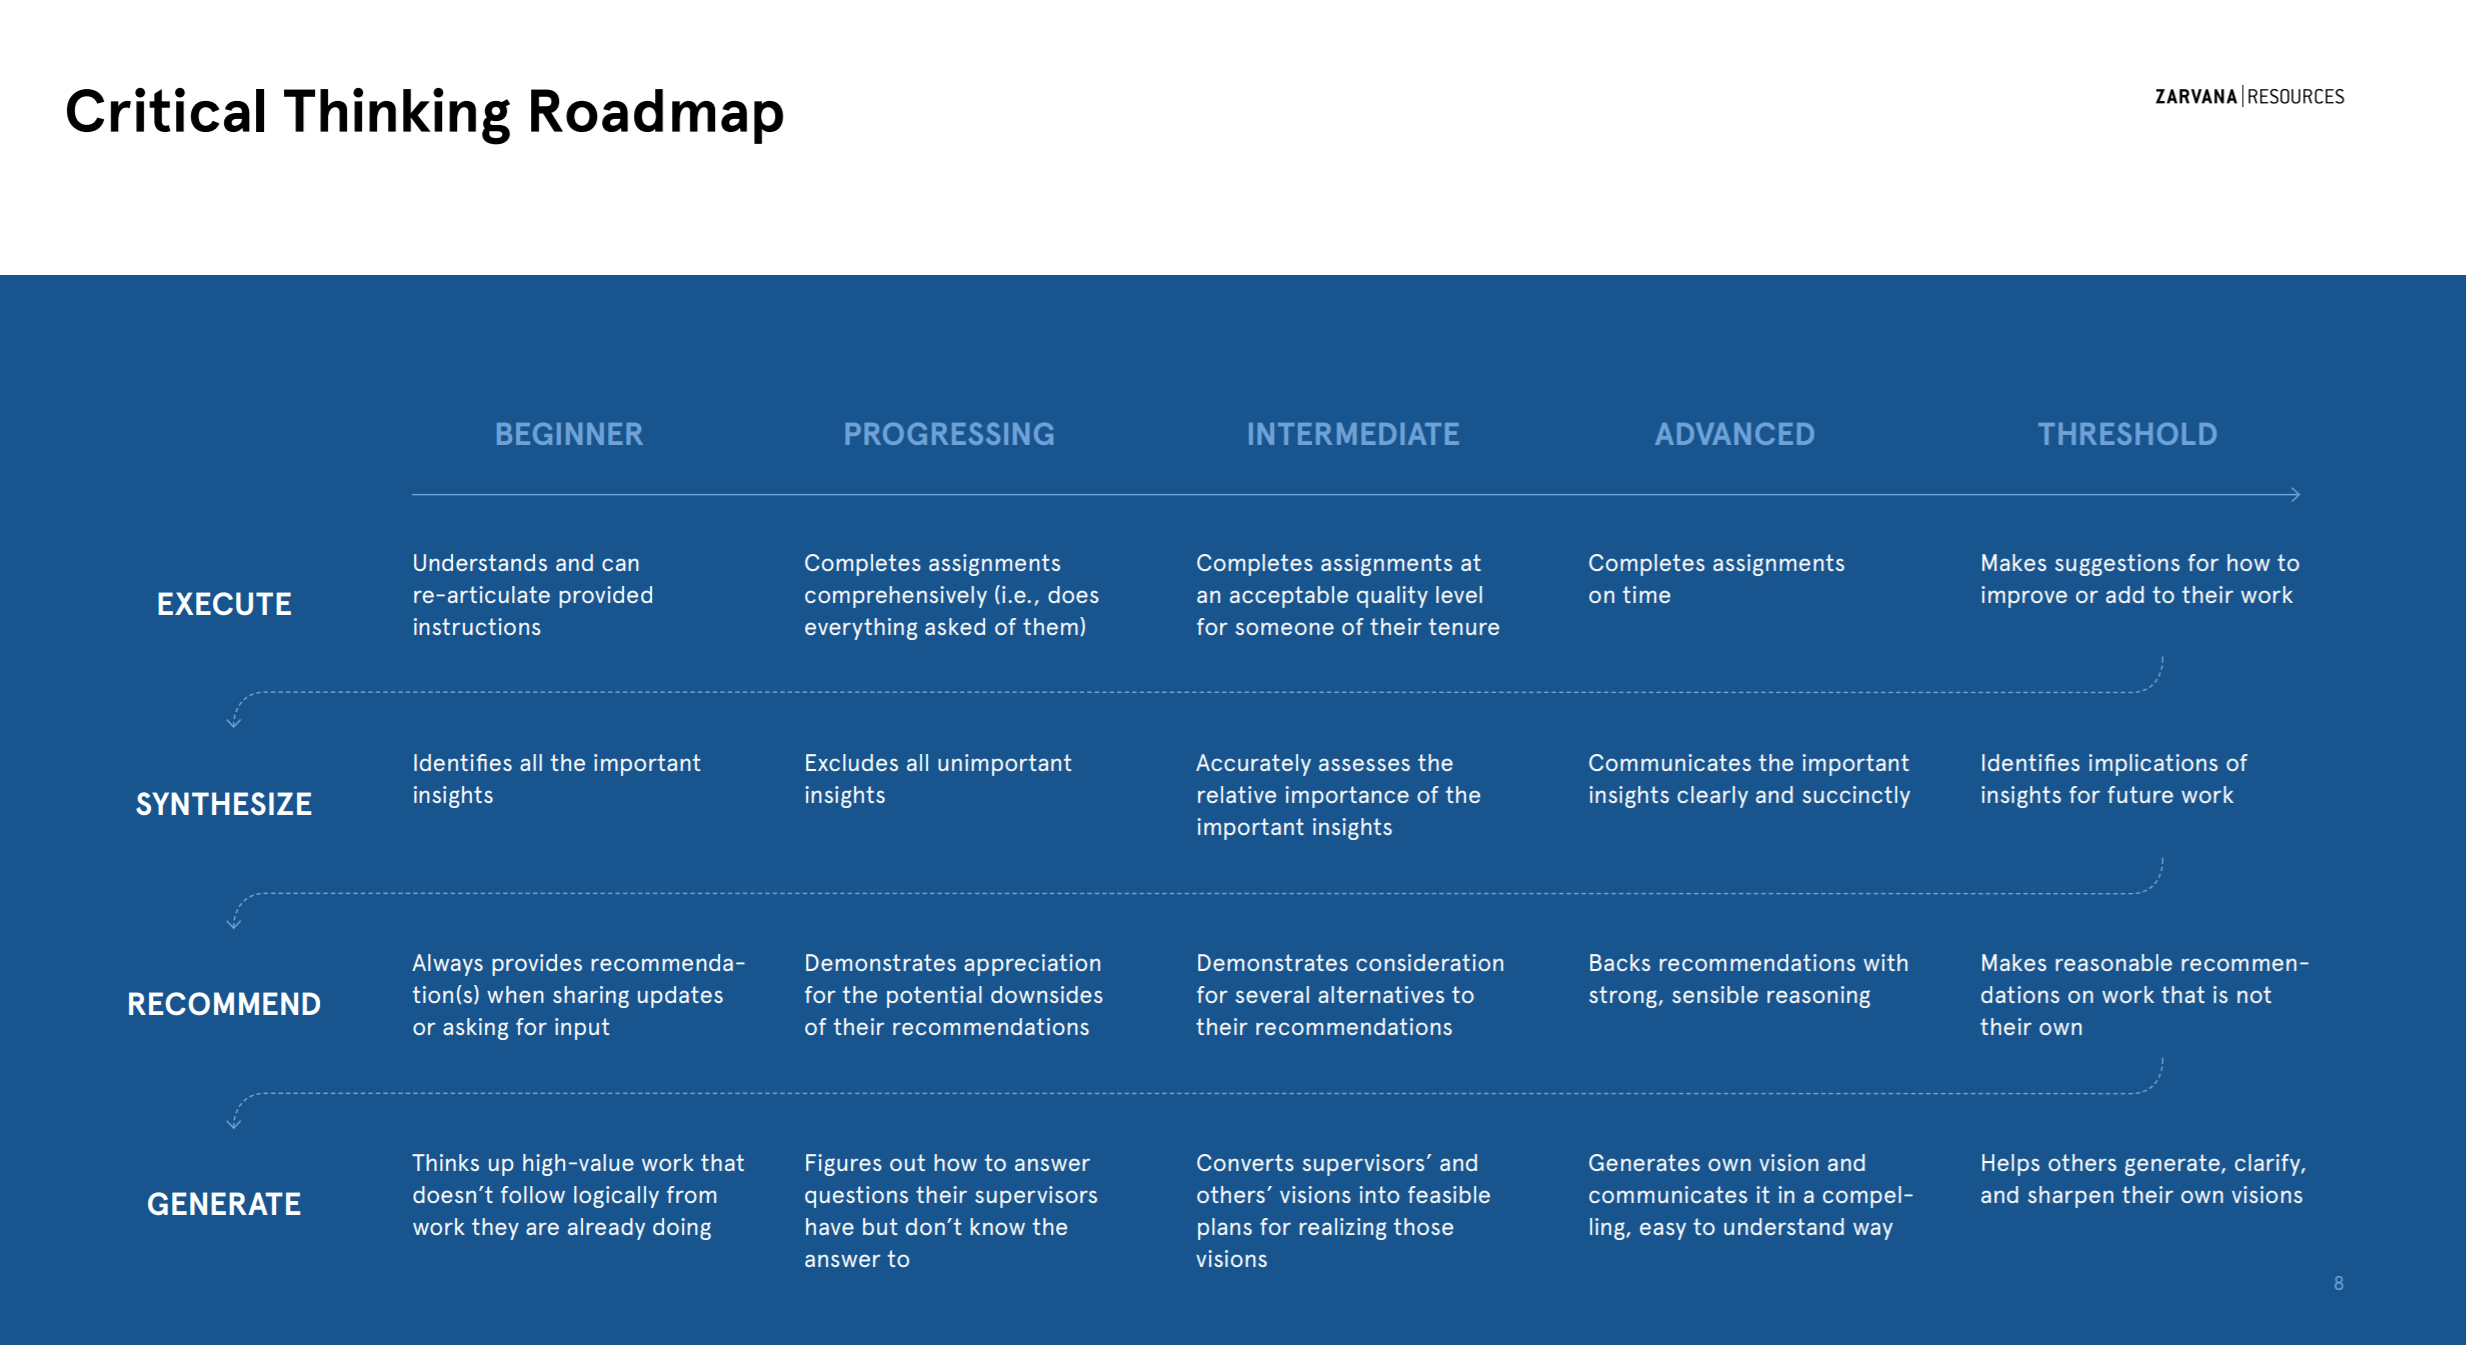 Critical thinking roadmap